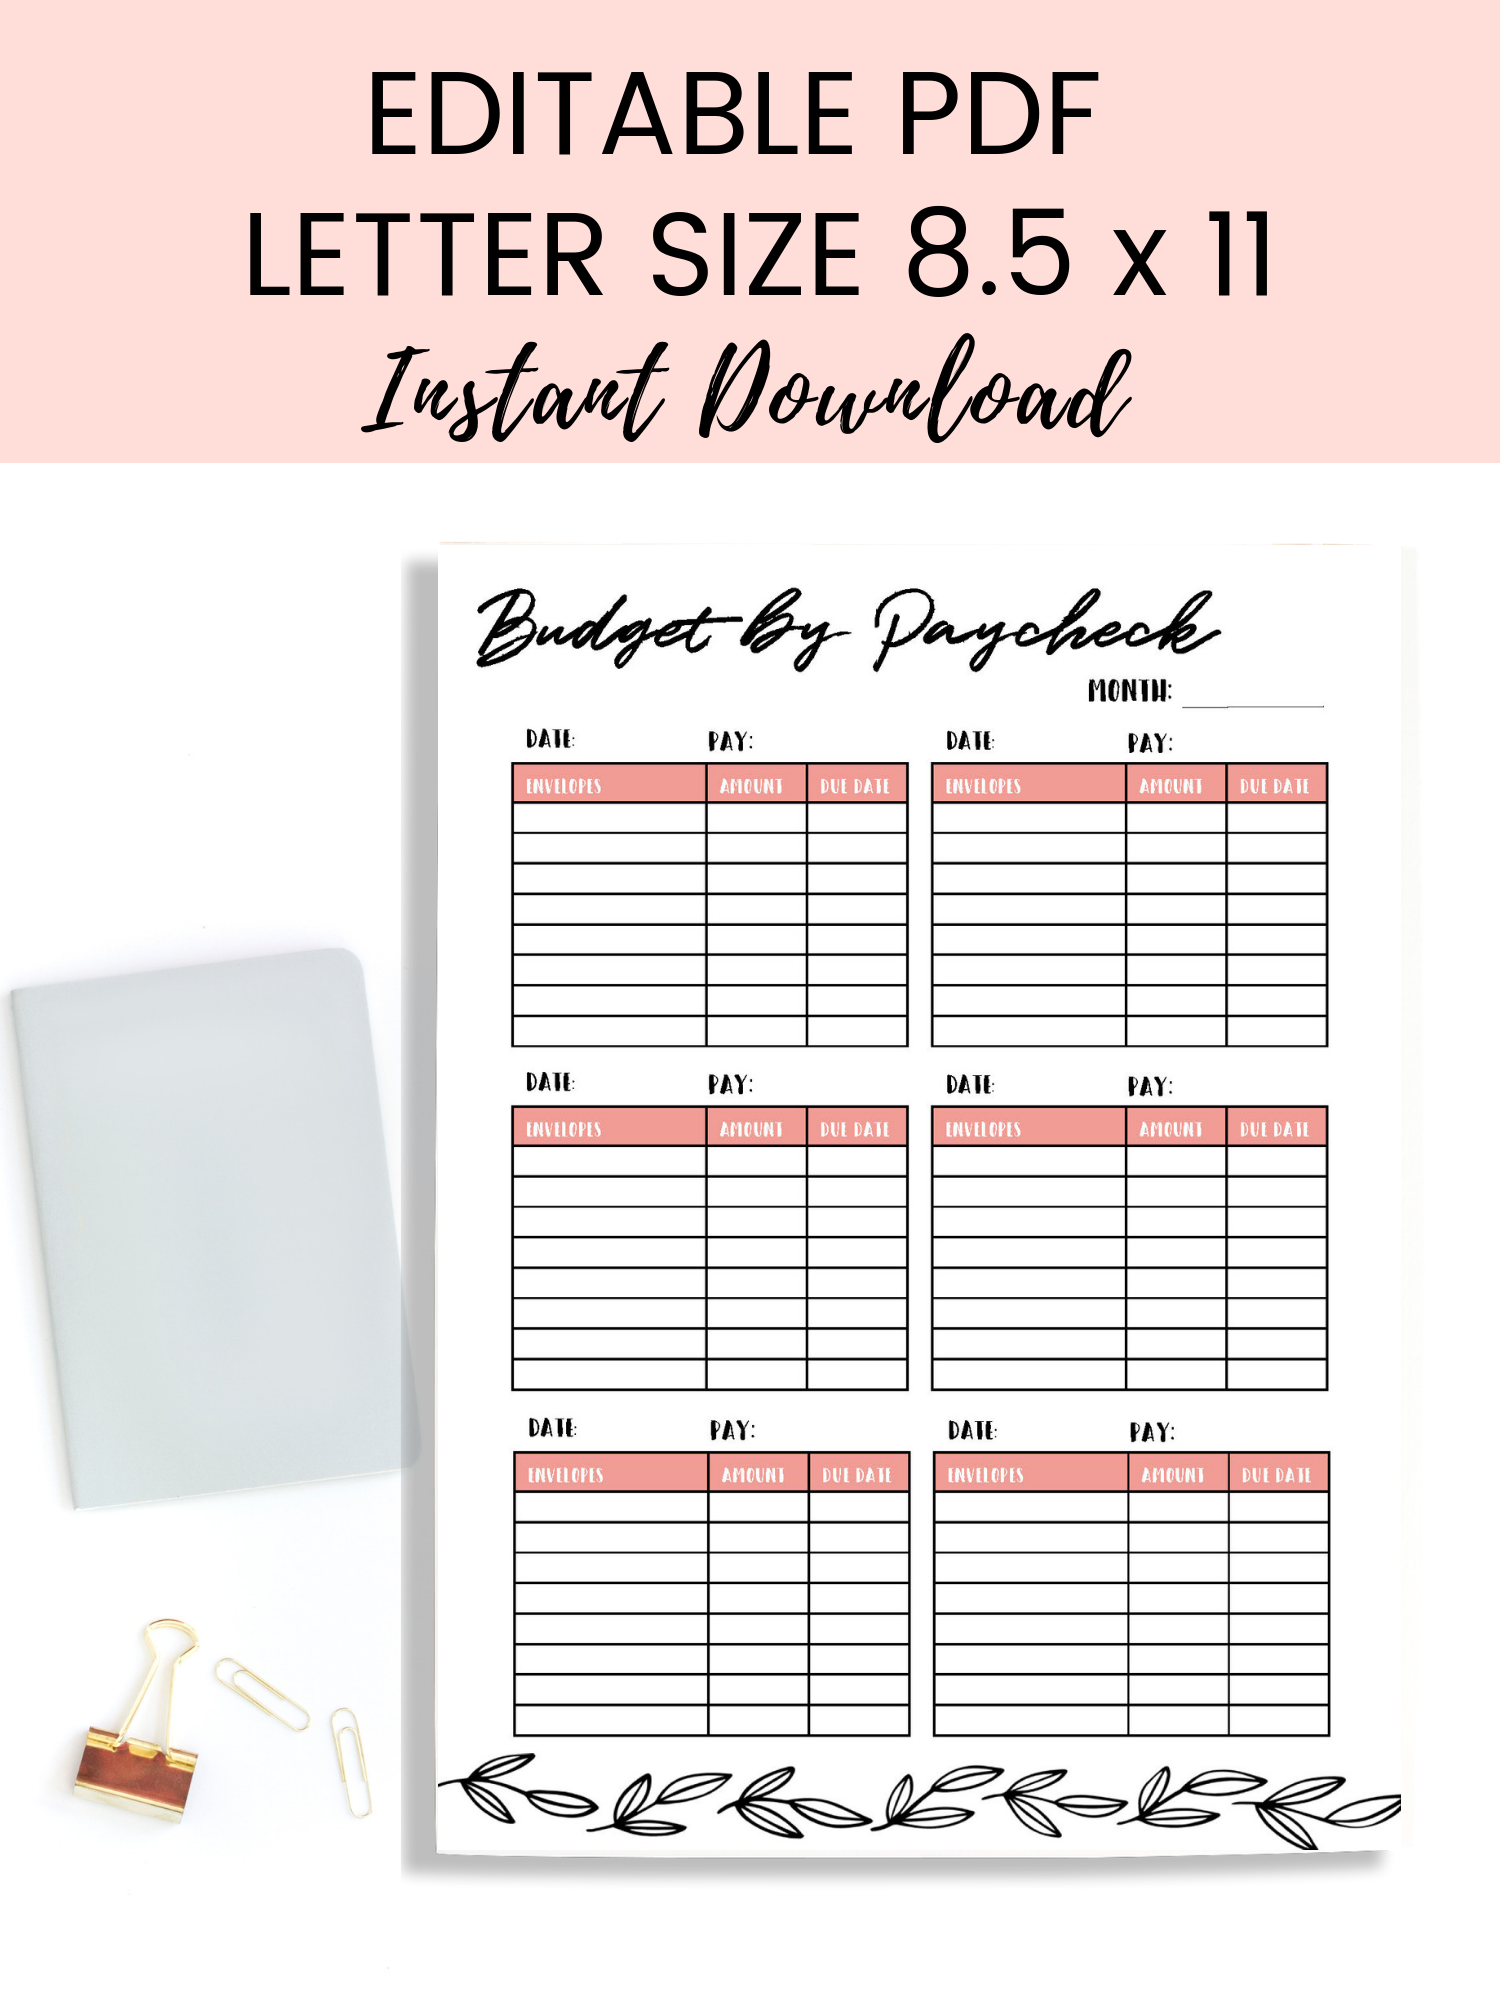 Budget By Paycheck Printable In